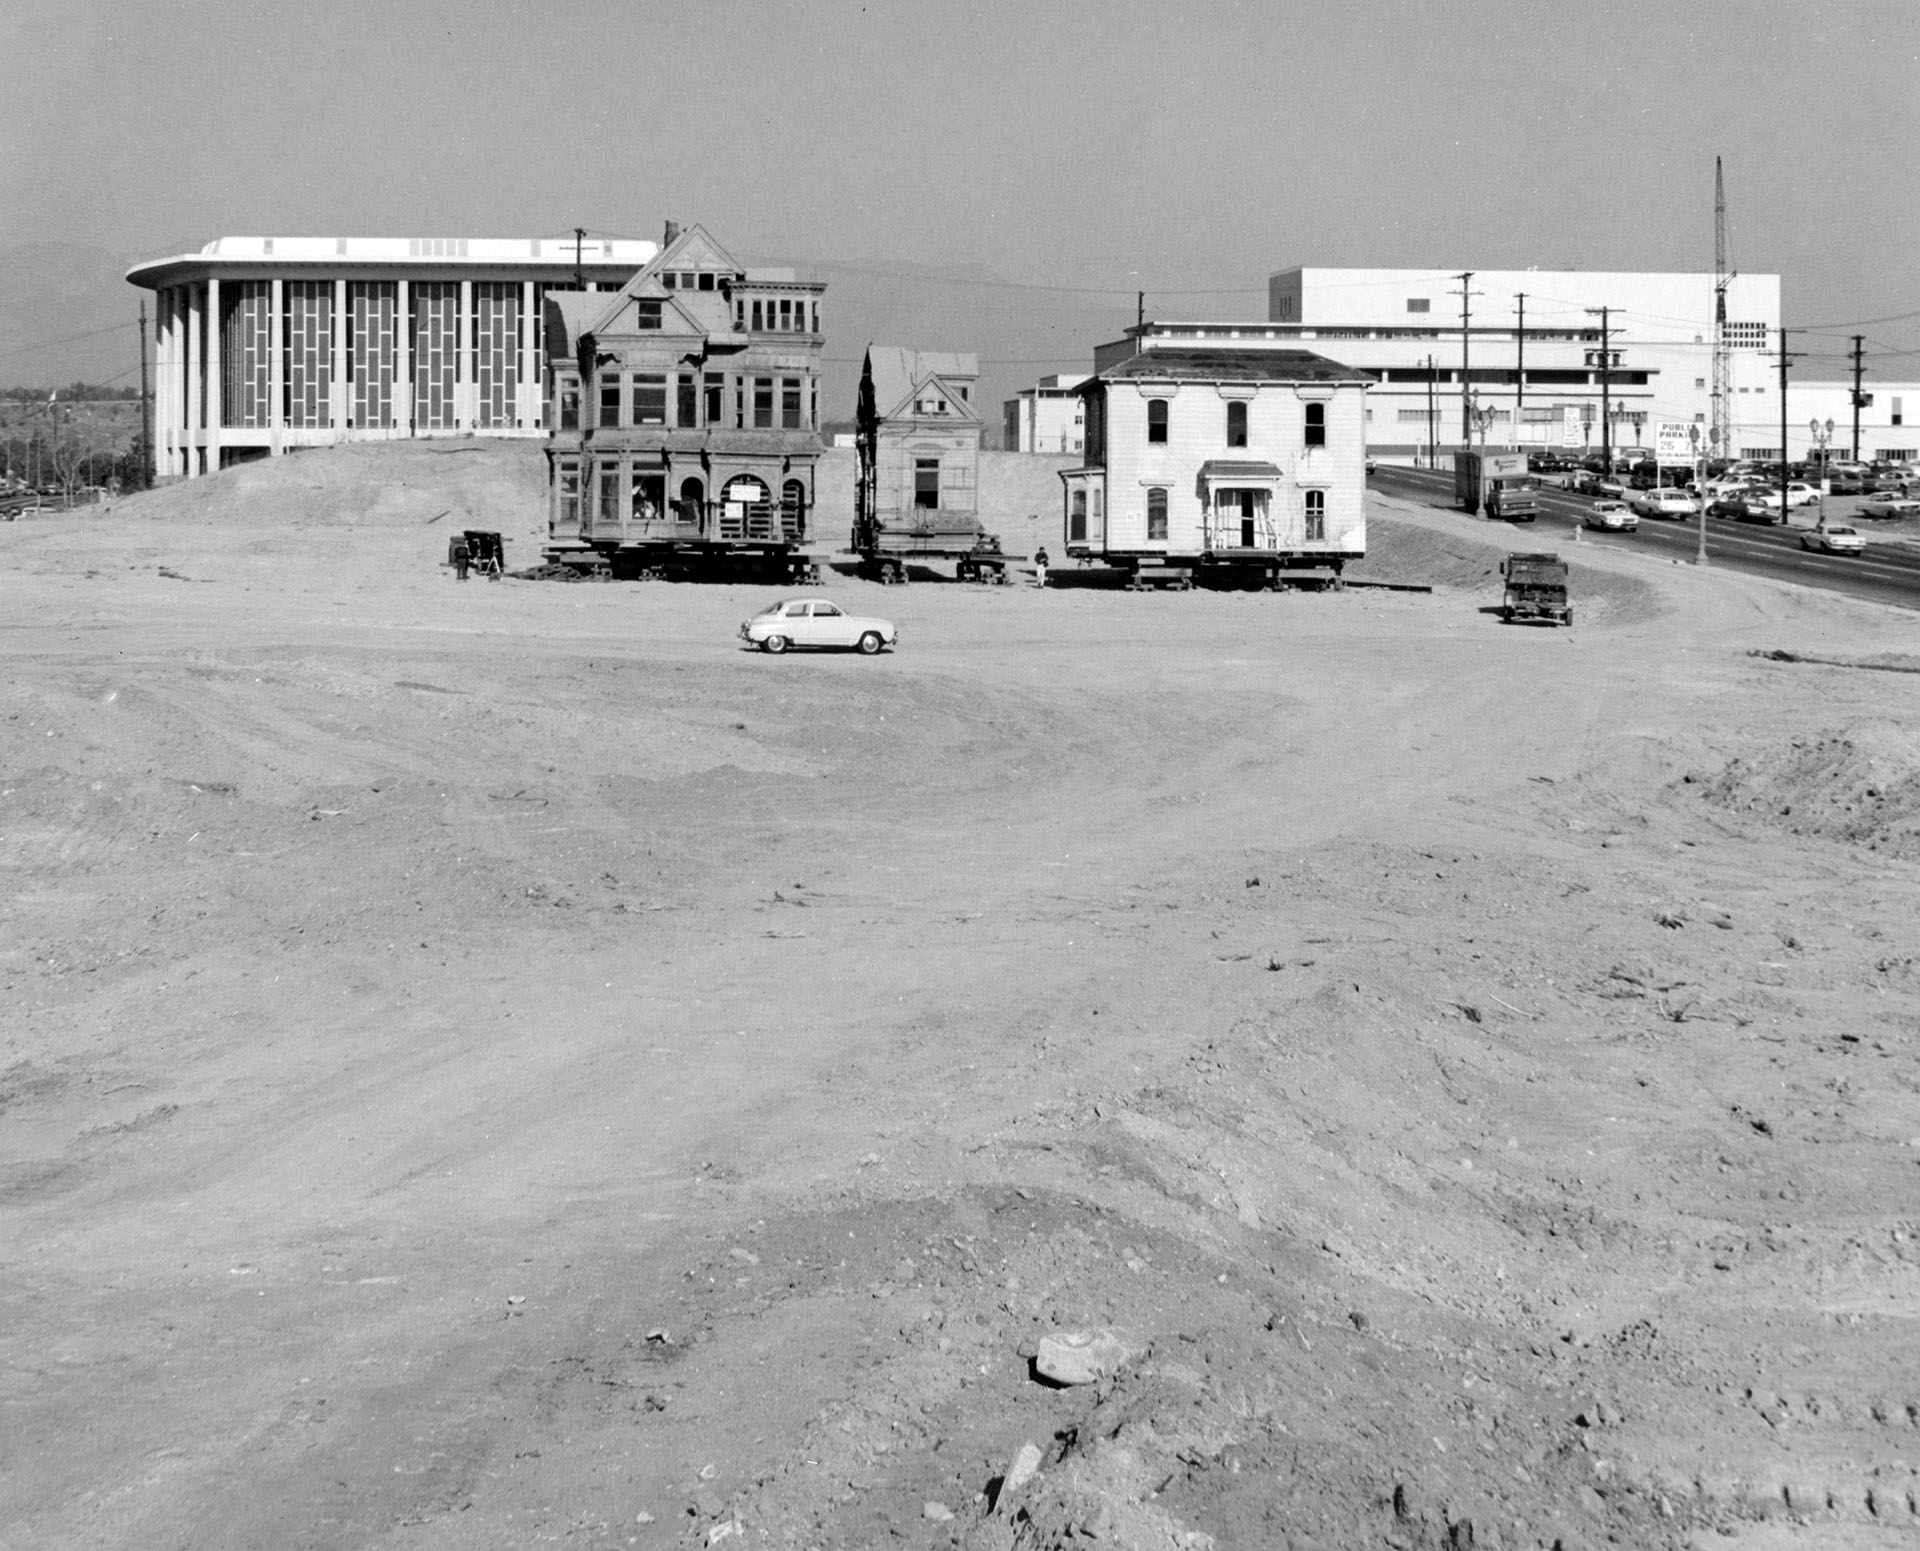 the lost hills of downtown los angeles kcet two remnants of bunker hill their surroundings completly transformed by regrading prepare for relocation